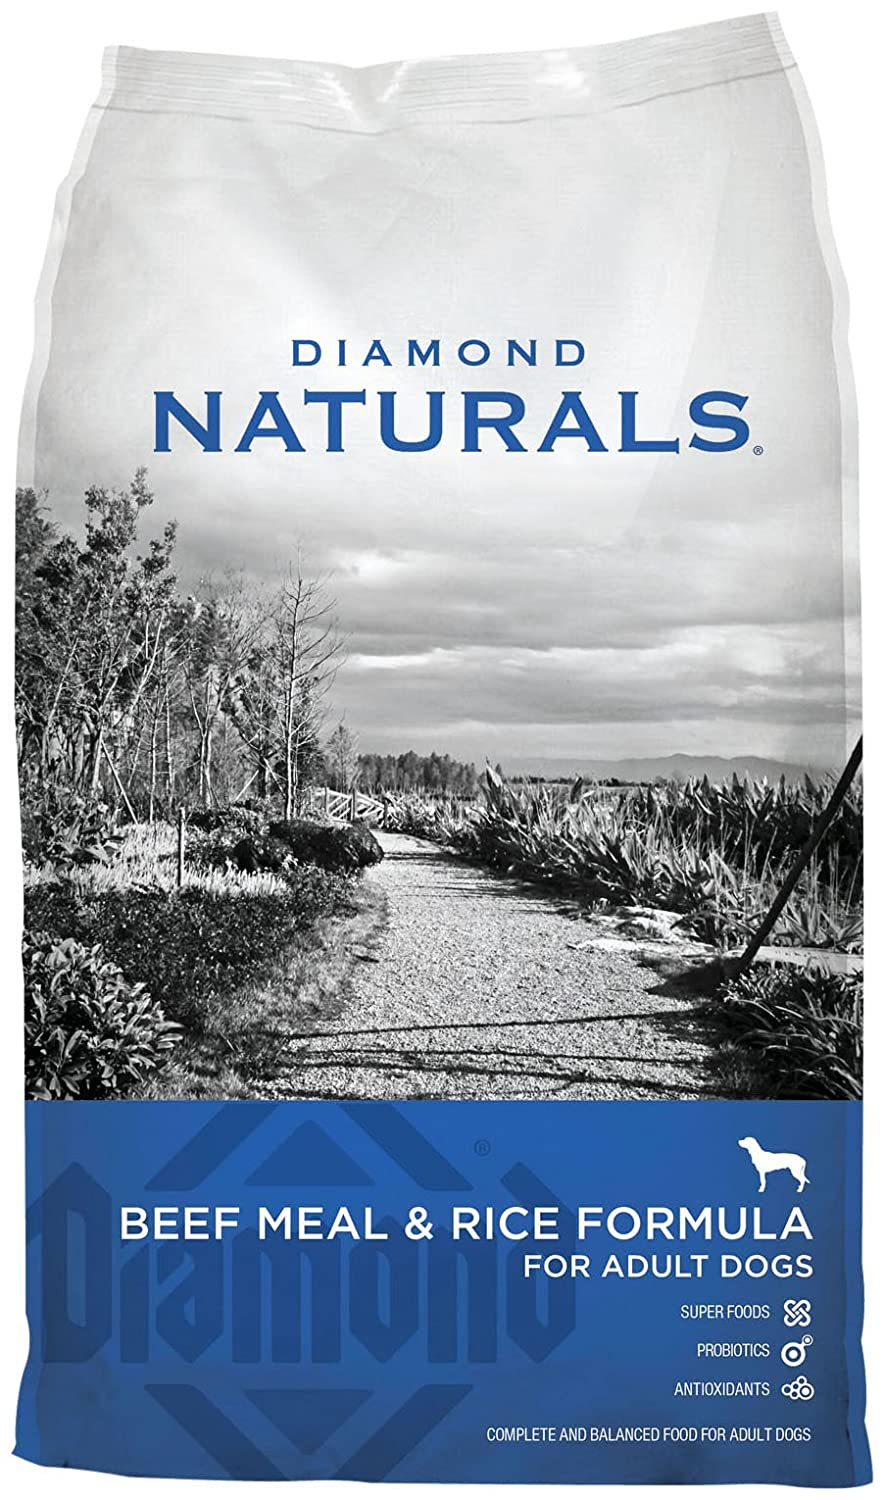 Diamond Naturals Beef and Rice Formula Dry Dog Food for Adult Dogs